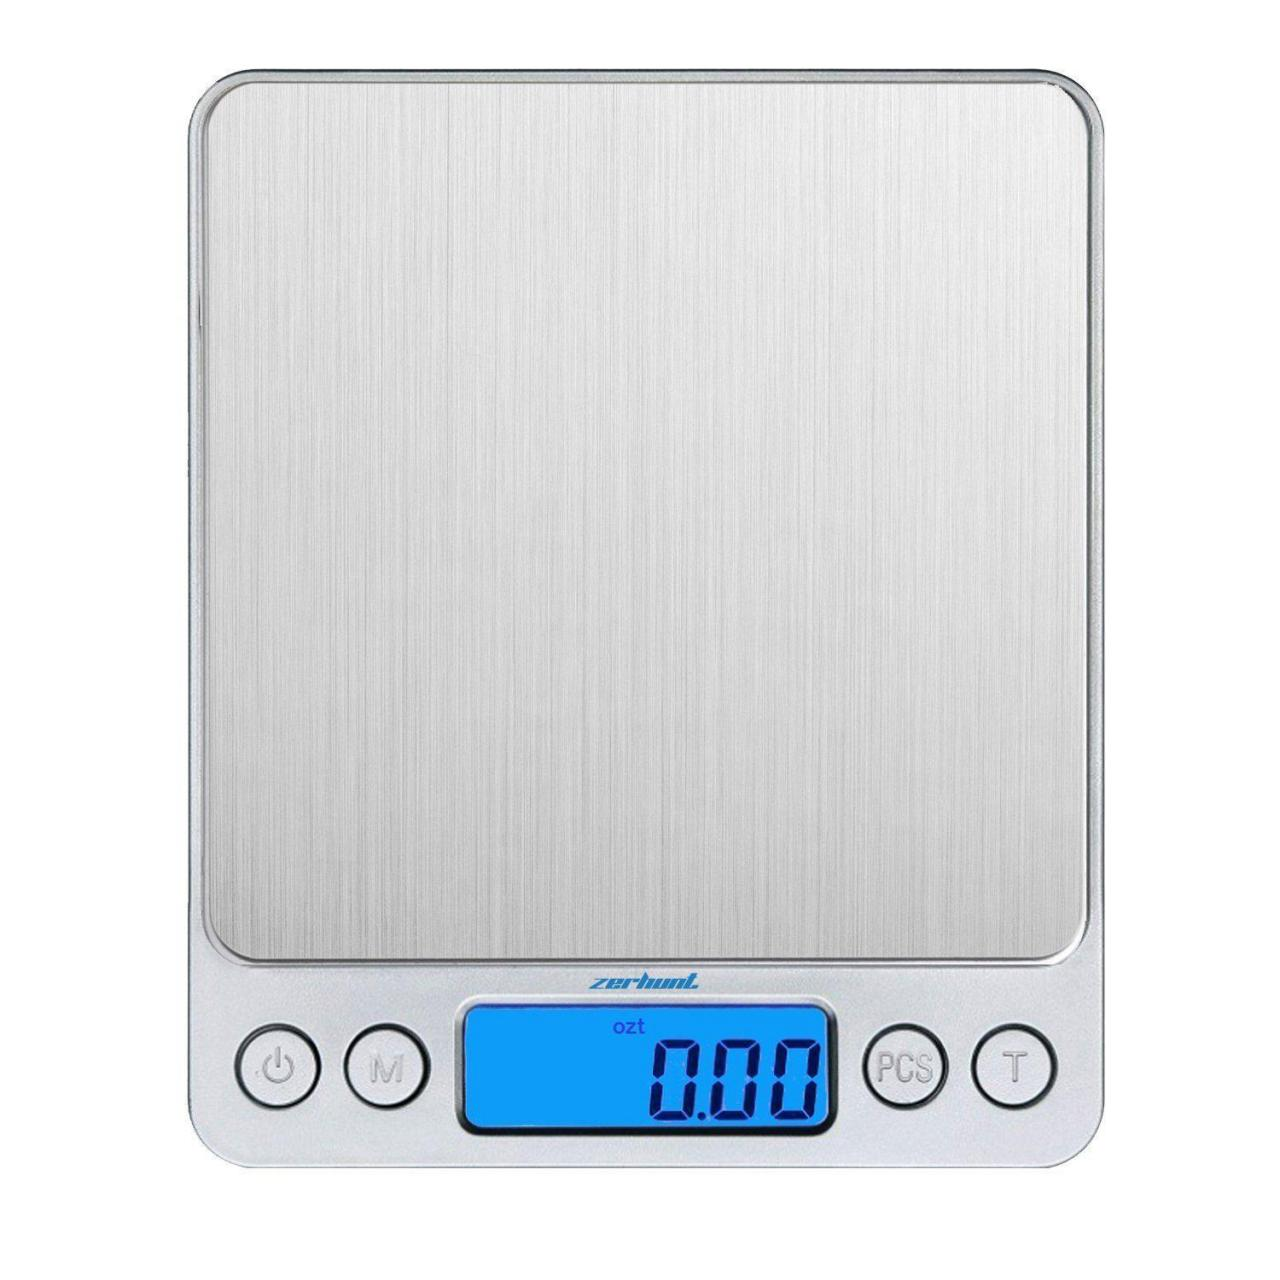 Buy cheap Zerhunt Digital Food Scale Kitchen Scale Slim Stainless Mult from wholesalers